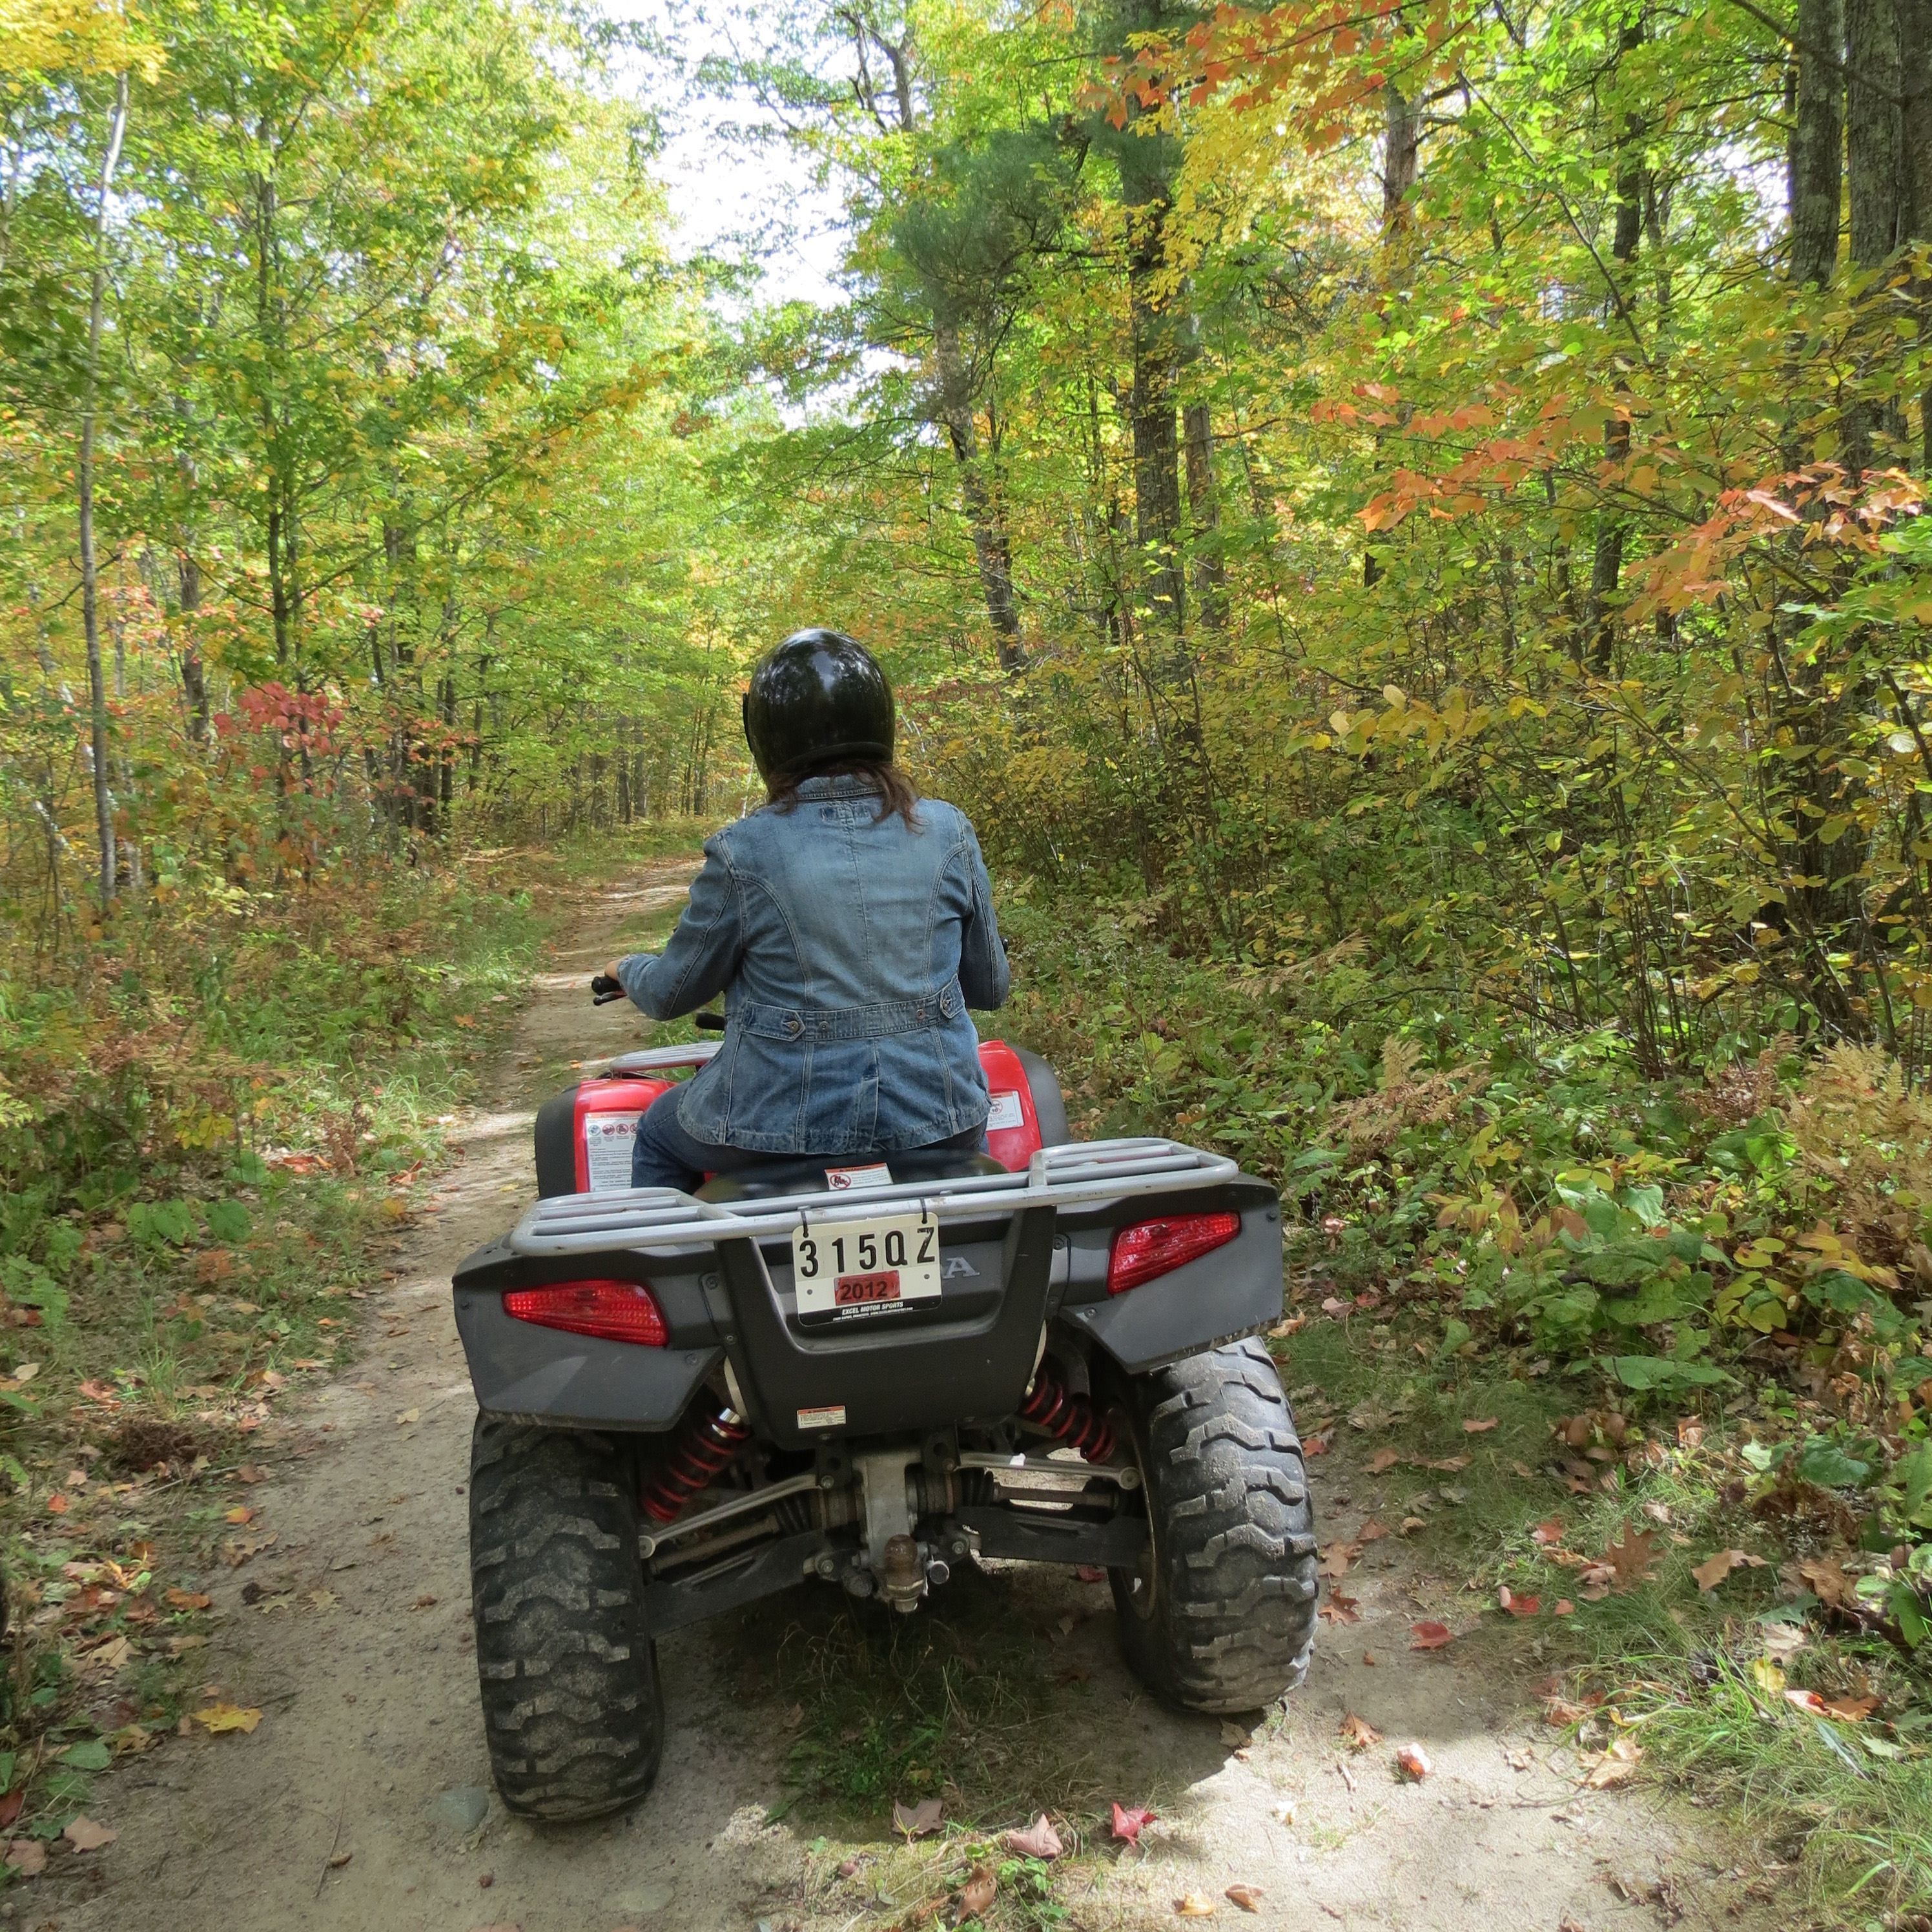 PErson riding a 4-wheeler on the Forest